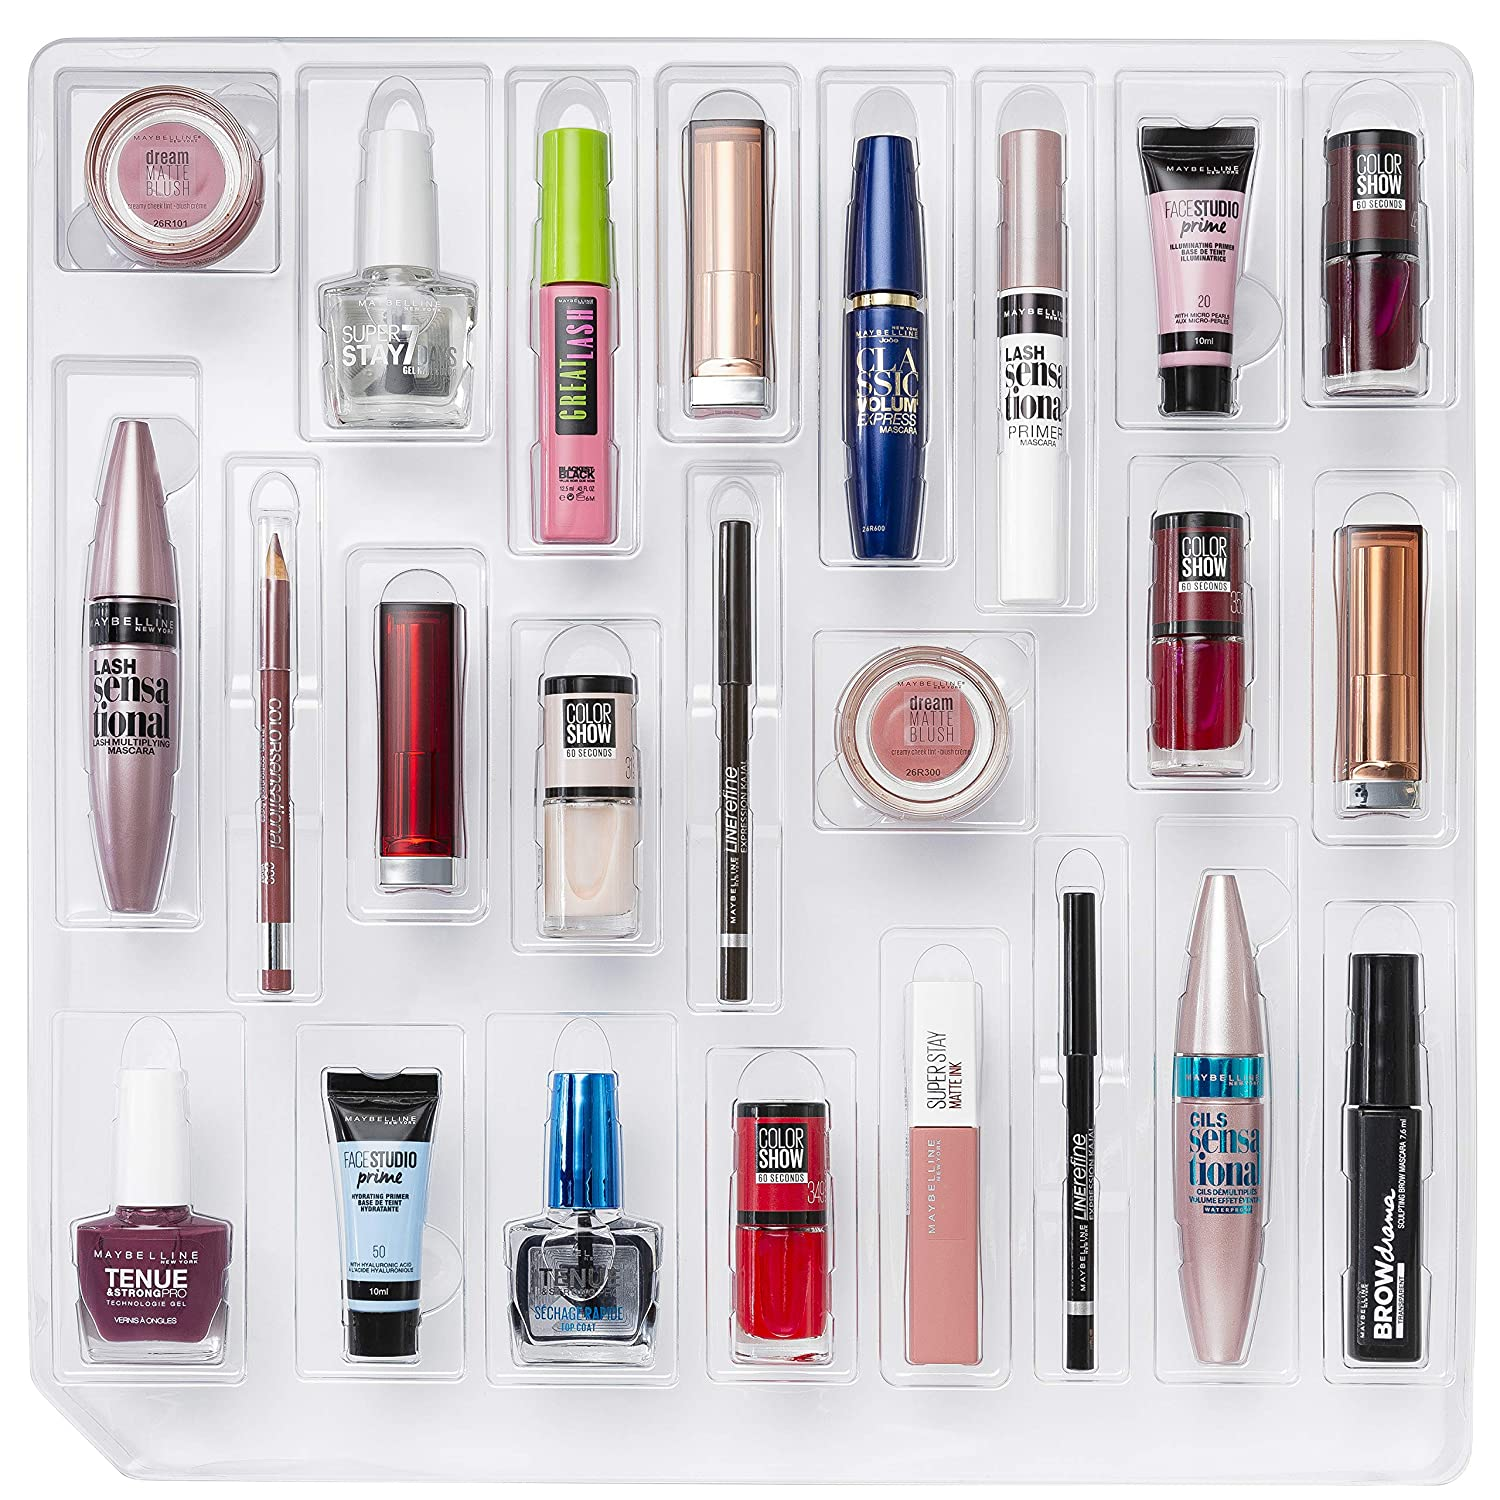 Maybelline Adventskalender 2019 Inhalt